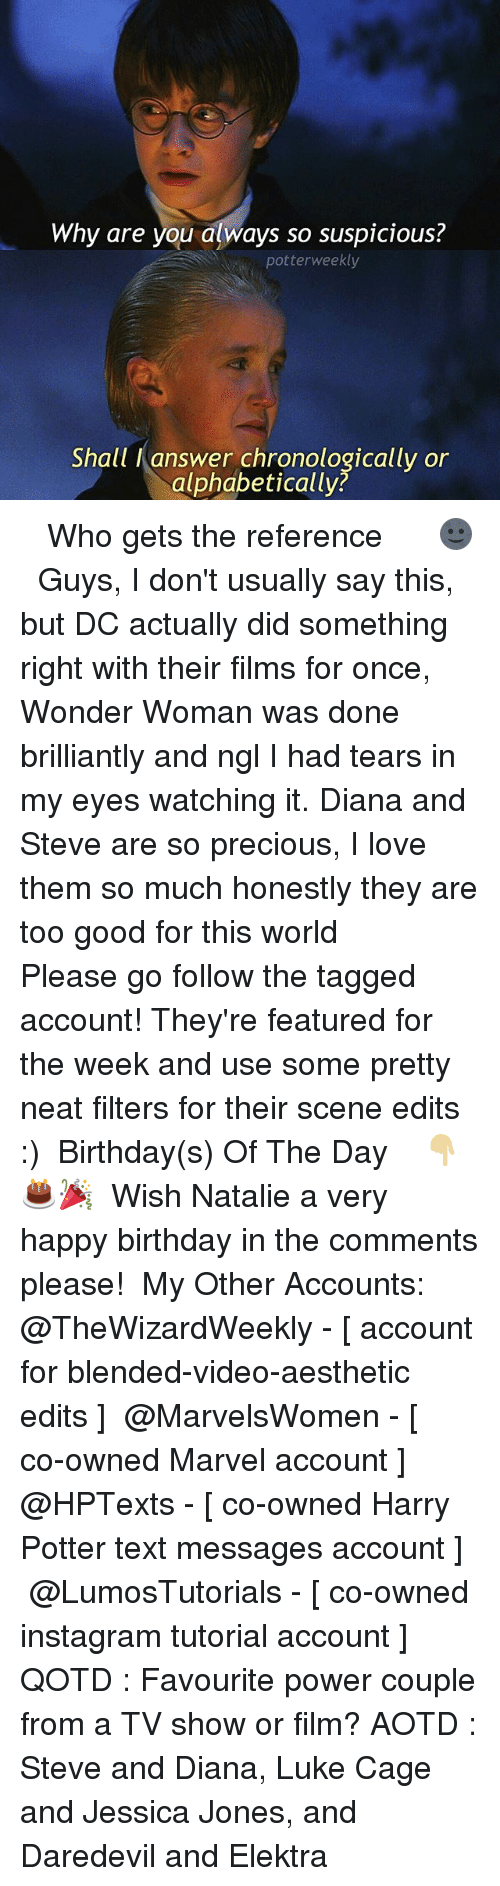 Suspicious: Why are you always so suspicious?  potterweekly  Shall I answer chronologically or  alphabetically? ✎✐✎ ↯ ⇢ Who gets the reference 🌚 ↯ ⇢ Guys, I don't usually say this, but DC actually did something right with their films for once, Wonder Woman was done brilliantly and ngl I had tears in my eyes watching it. Diana and Steve are so precious, I love them so much honestly they are too good for this world ↯ ⇢ Please go follow the tagged account! They're featured for the week and use some pretty neat filters for their scene edits :) ✎✐✎ Birthday(s) Of The Day 👇🏼🎂🎉 ⇢ Wish Natalie a very happy birthday in the comments please! ✎✐✎ My Other Accounts: ⇢ @TheWizardWeekly - [ account for blended-video-aesthetic edits ] ⇢ @MarvelsWomen - [ co-owned Marvel account ] ⇢ @HPTexts - [ co-owned Harry Potter text messages account ] ⇢ @LumosTutorials - [ co-owned instagram tutorial account ] ✎✐✎ QOTD : Favourite power couple from a TV show or film? AOTD : Steve and Diana, Luke Cage and Jessica Jones, and Daredevil and Elektra